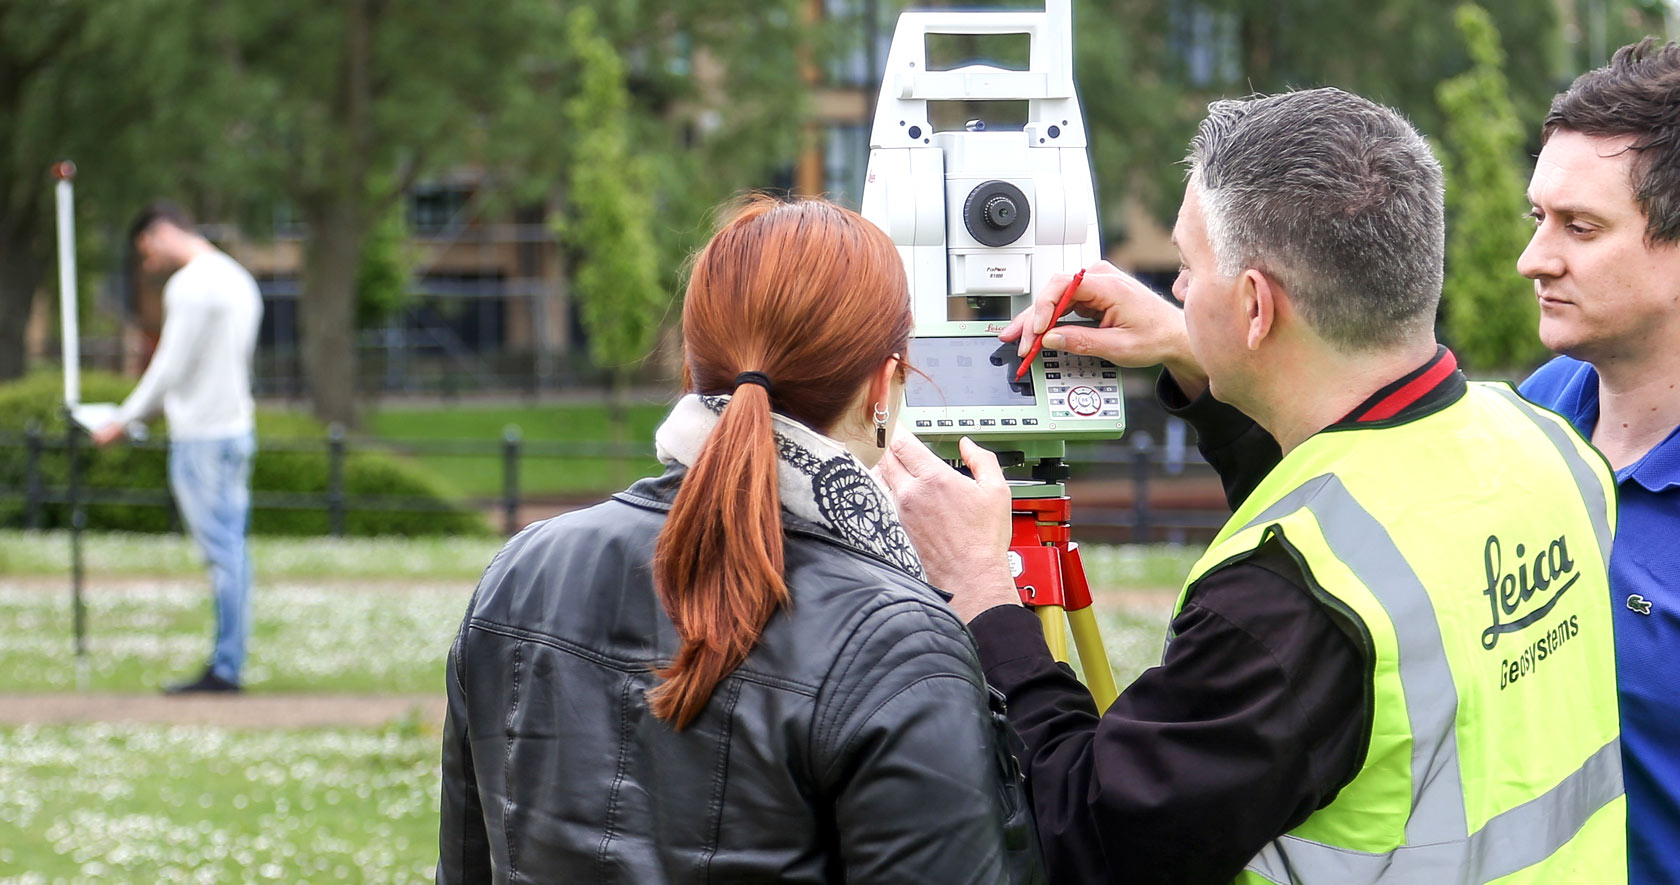 Leica Geosystems Educational Programme EMEA